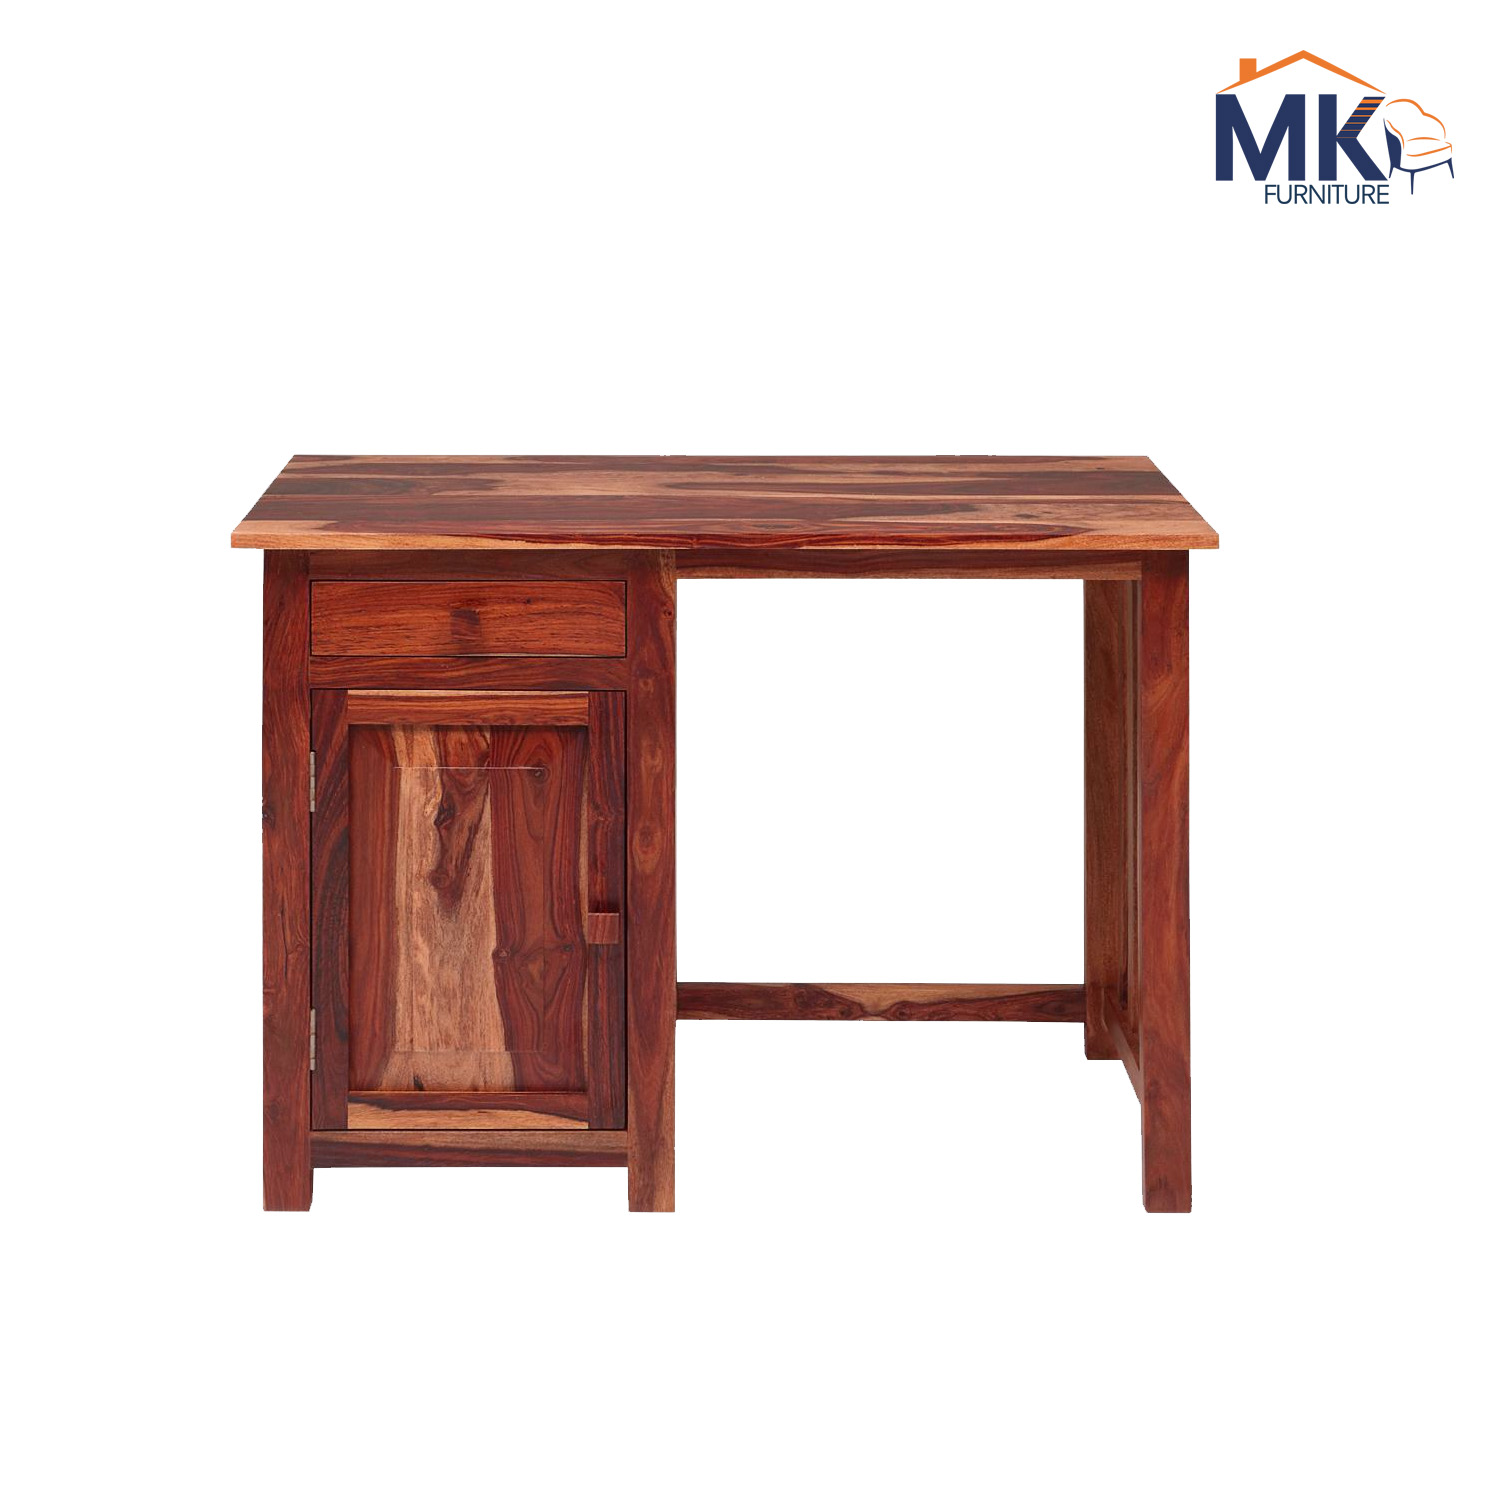 Solid Wood Study Table With Cabinet - Honey